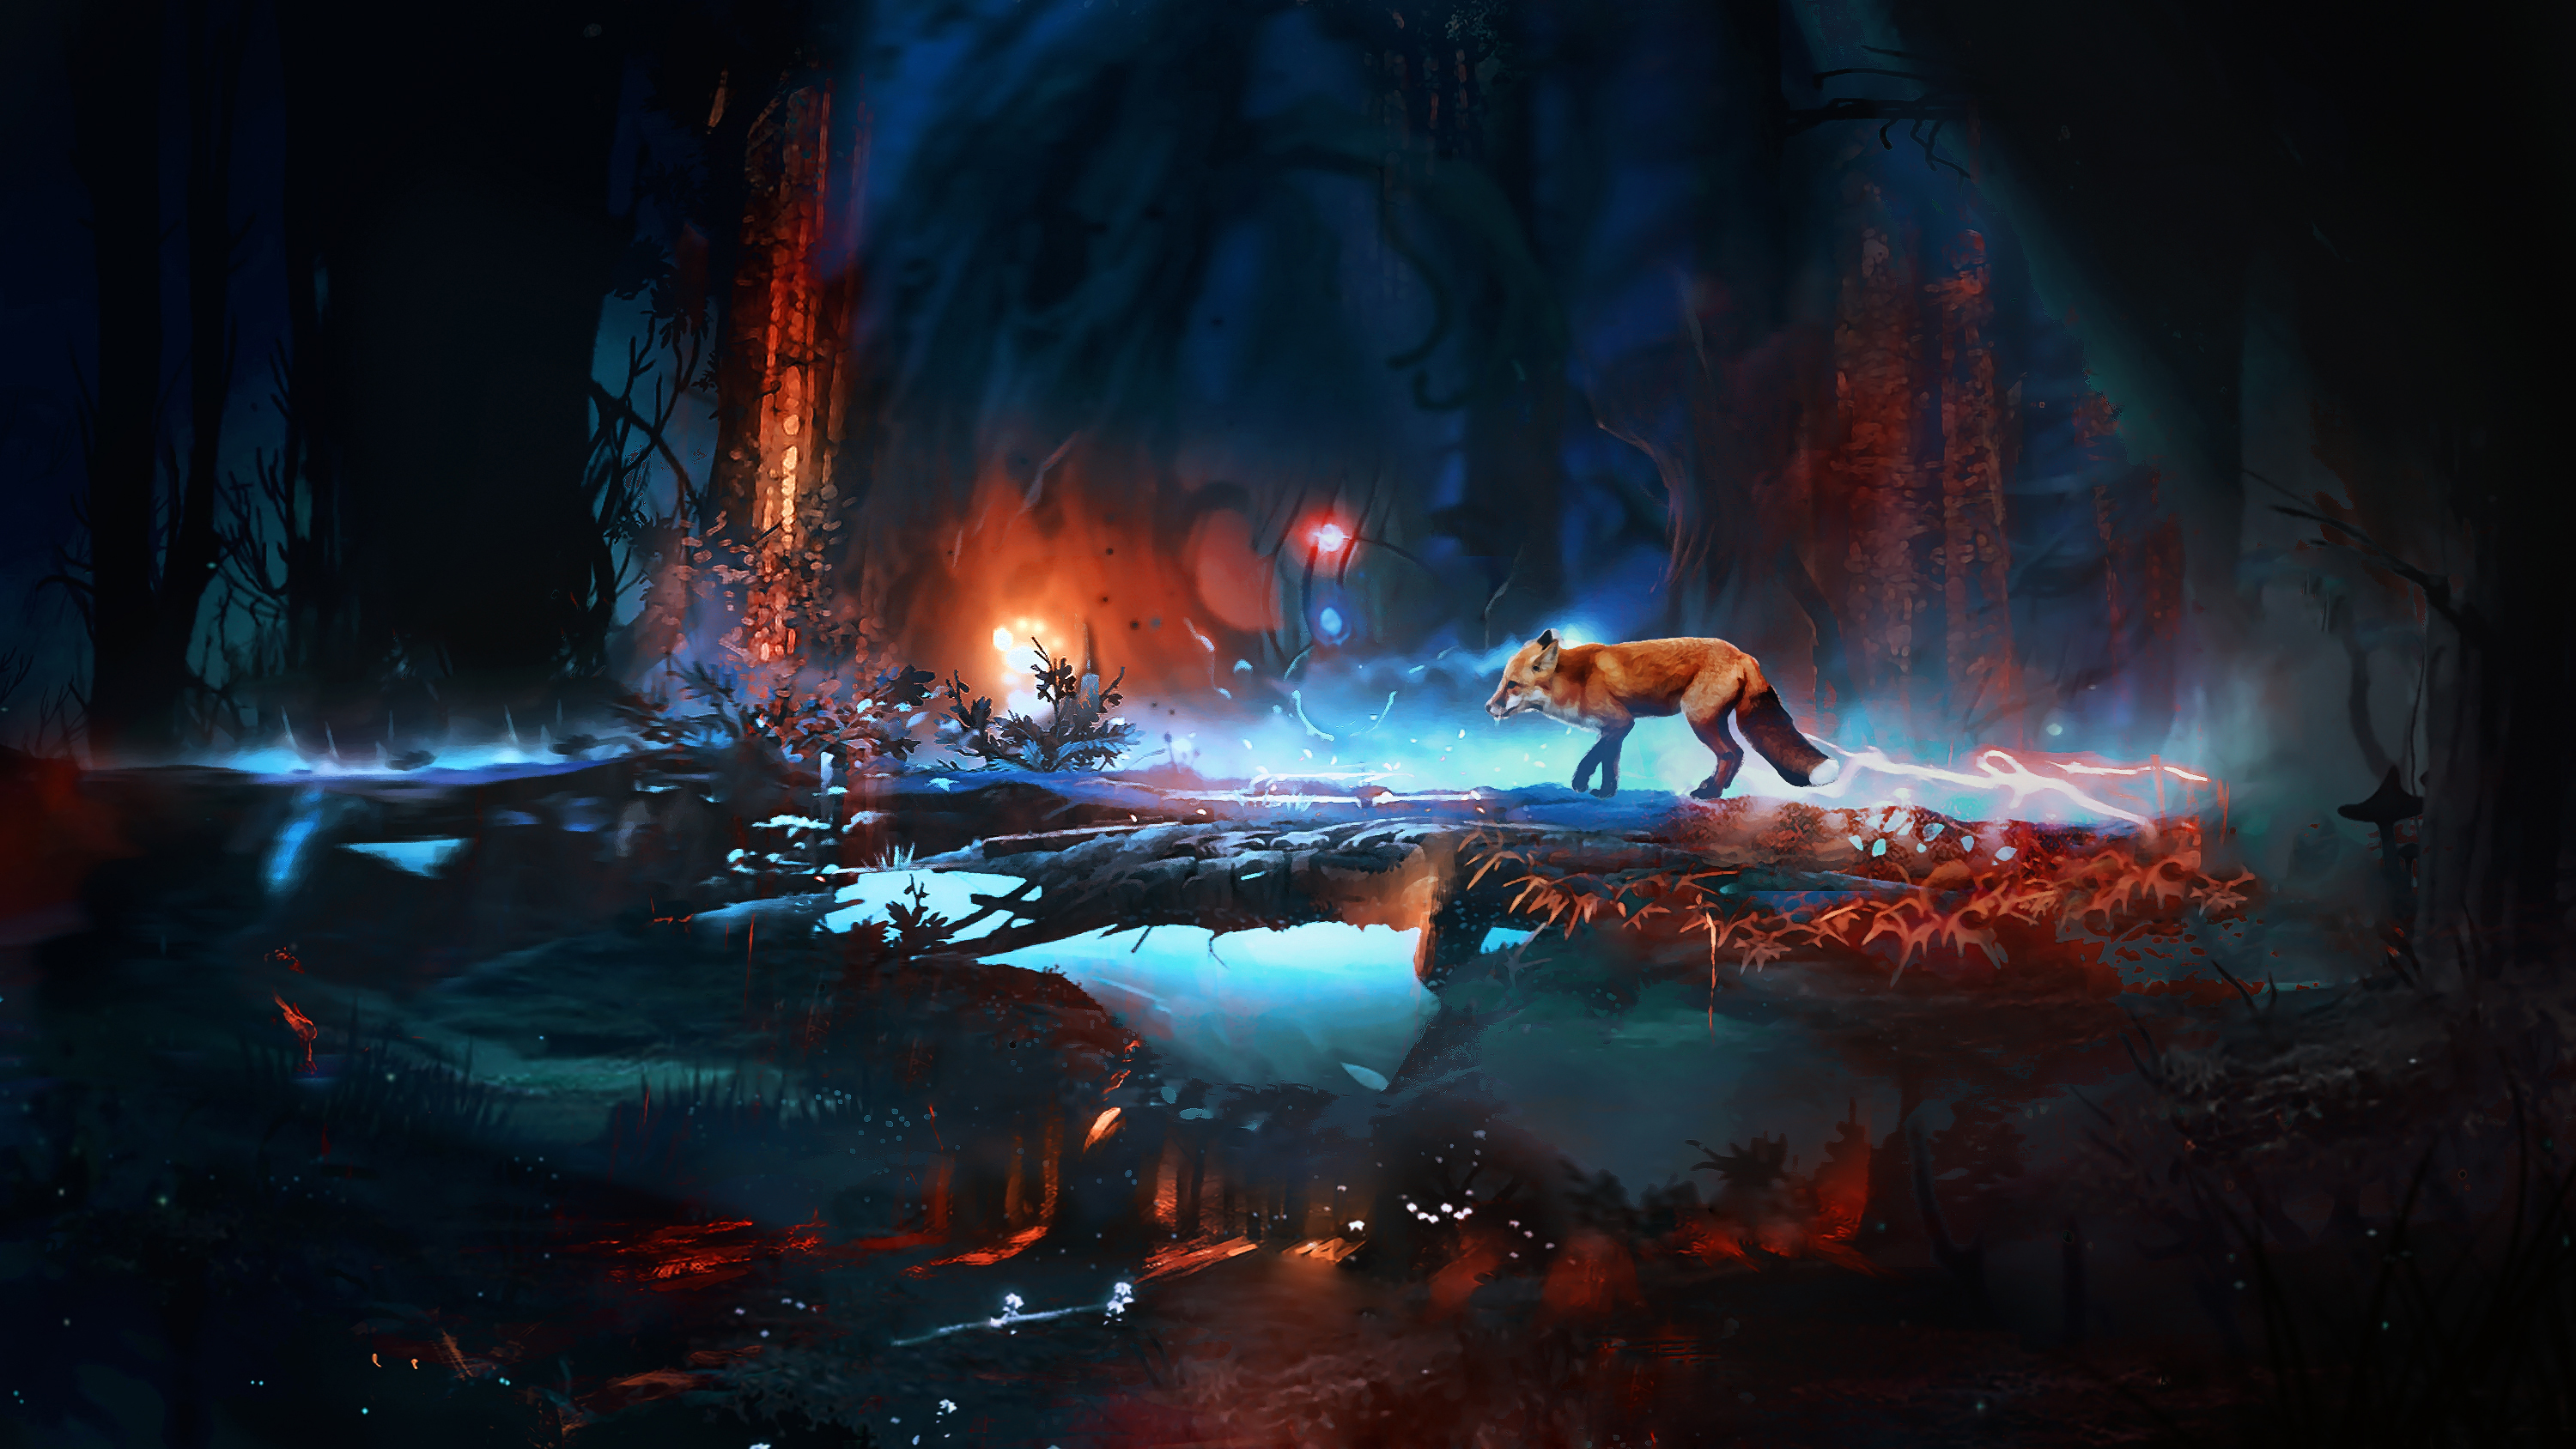 Image Foxes Fantasy Forest Animals 3000x1688